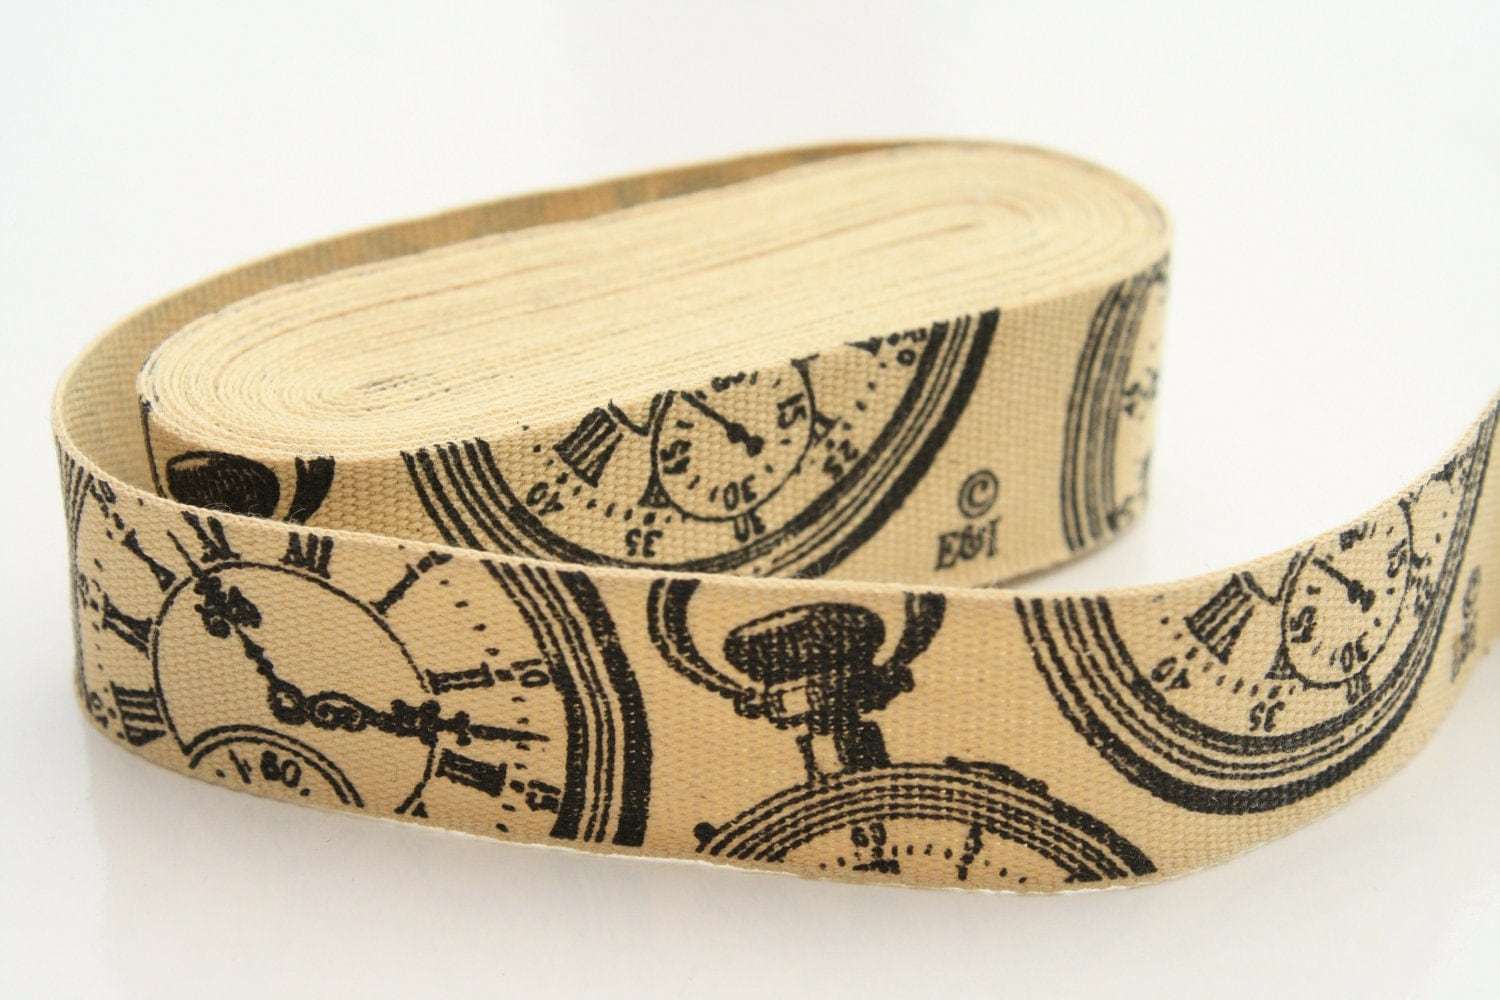 Fob Watch Woven Cotton Ribbon 5m length 20mm Wide